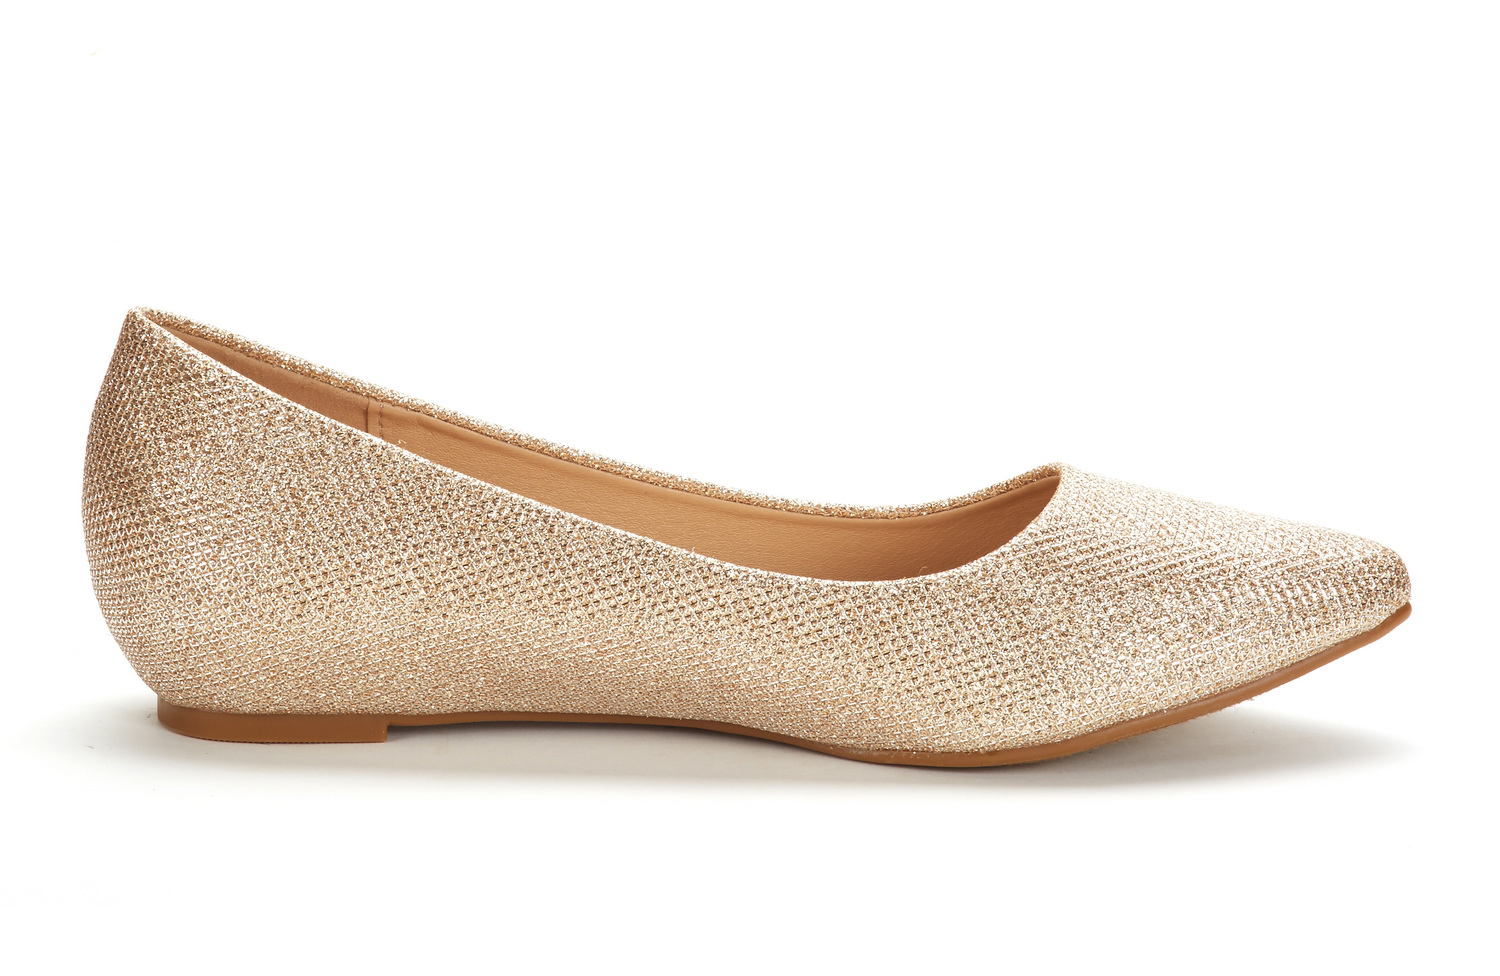 DREAM-PAIRS-Women-Low-Wedge-Flats-Ladies-Pointed-Toe-Slip-On-Comfort-Flat-Shoes thumbnail 28